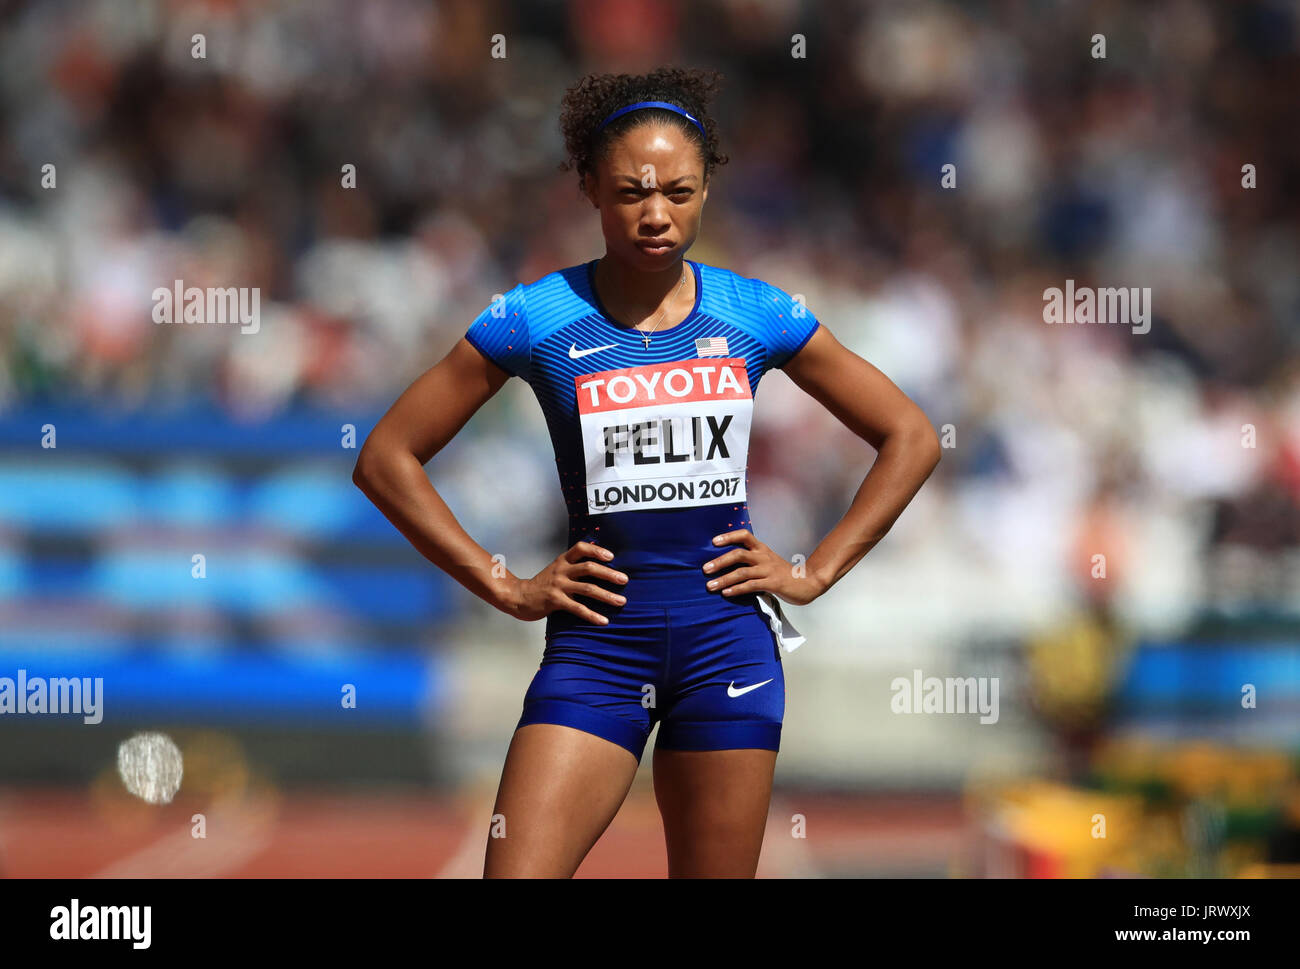 USA's Allyson Felix in the Women's 400m heat one during day three of the 2017 IAAF World Championships at the London Stadium. PRESS ASSOCIATION Photo. Picture date: Sunday August 6, 2017. See PA story ATHLETICS World. Photo credit should read: John Walton/PA Wire. RESTRICTIONS: Editorial use only. No transmission of sound or moving images and no video simulation - Stock Image